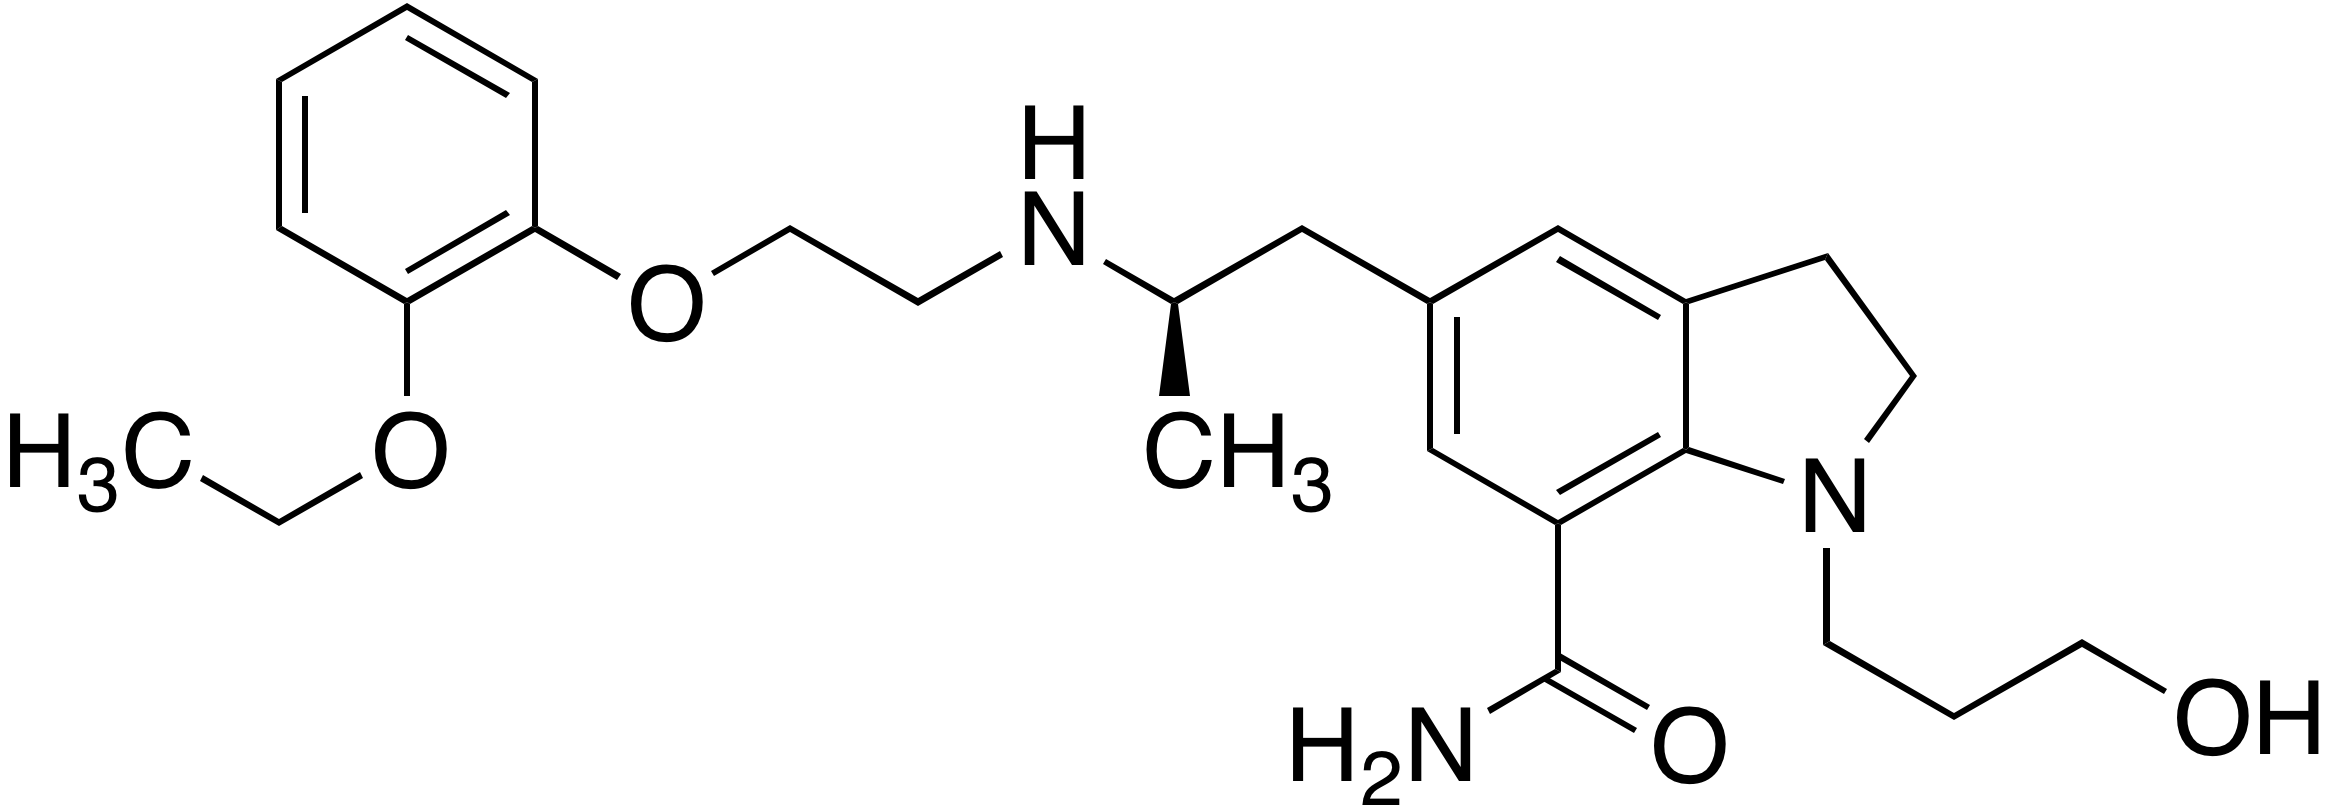 Silodosin impurity 11